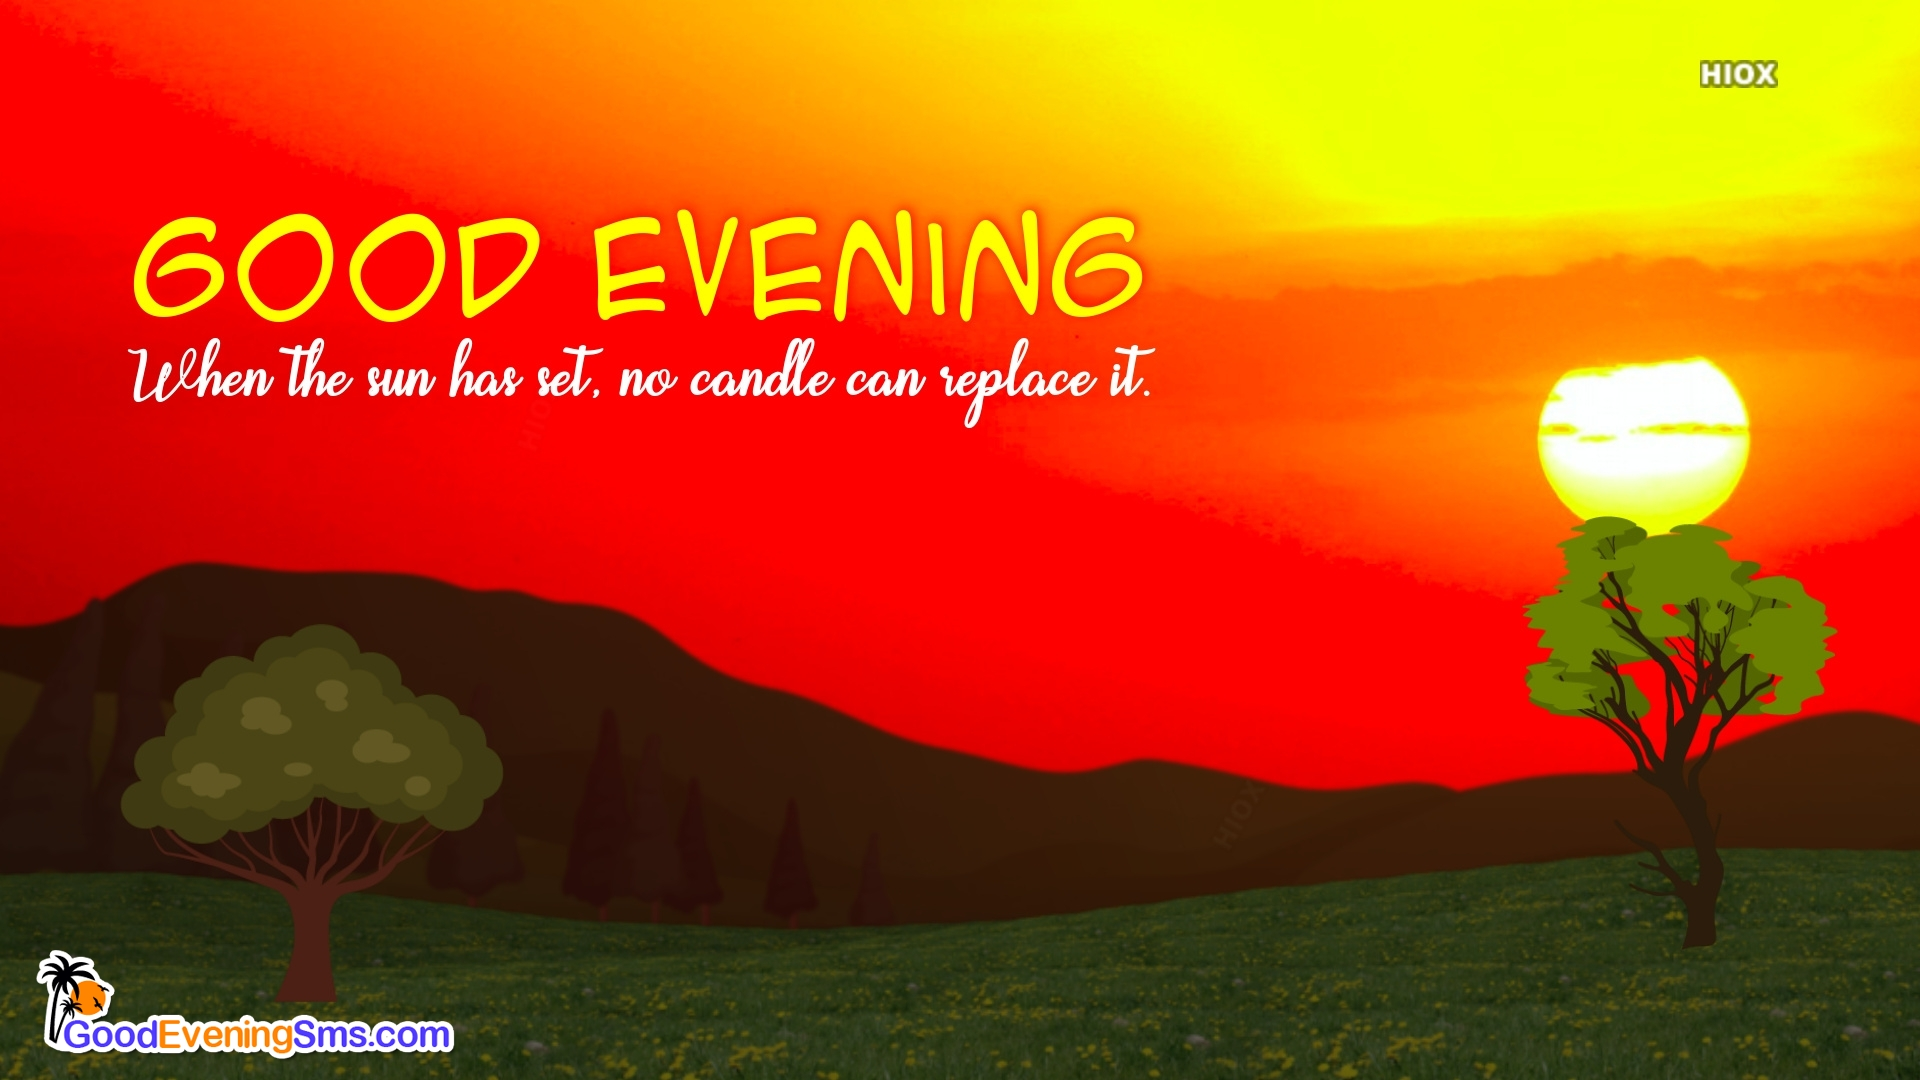 Good Evening Quotes With Sunset